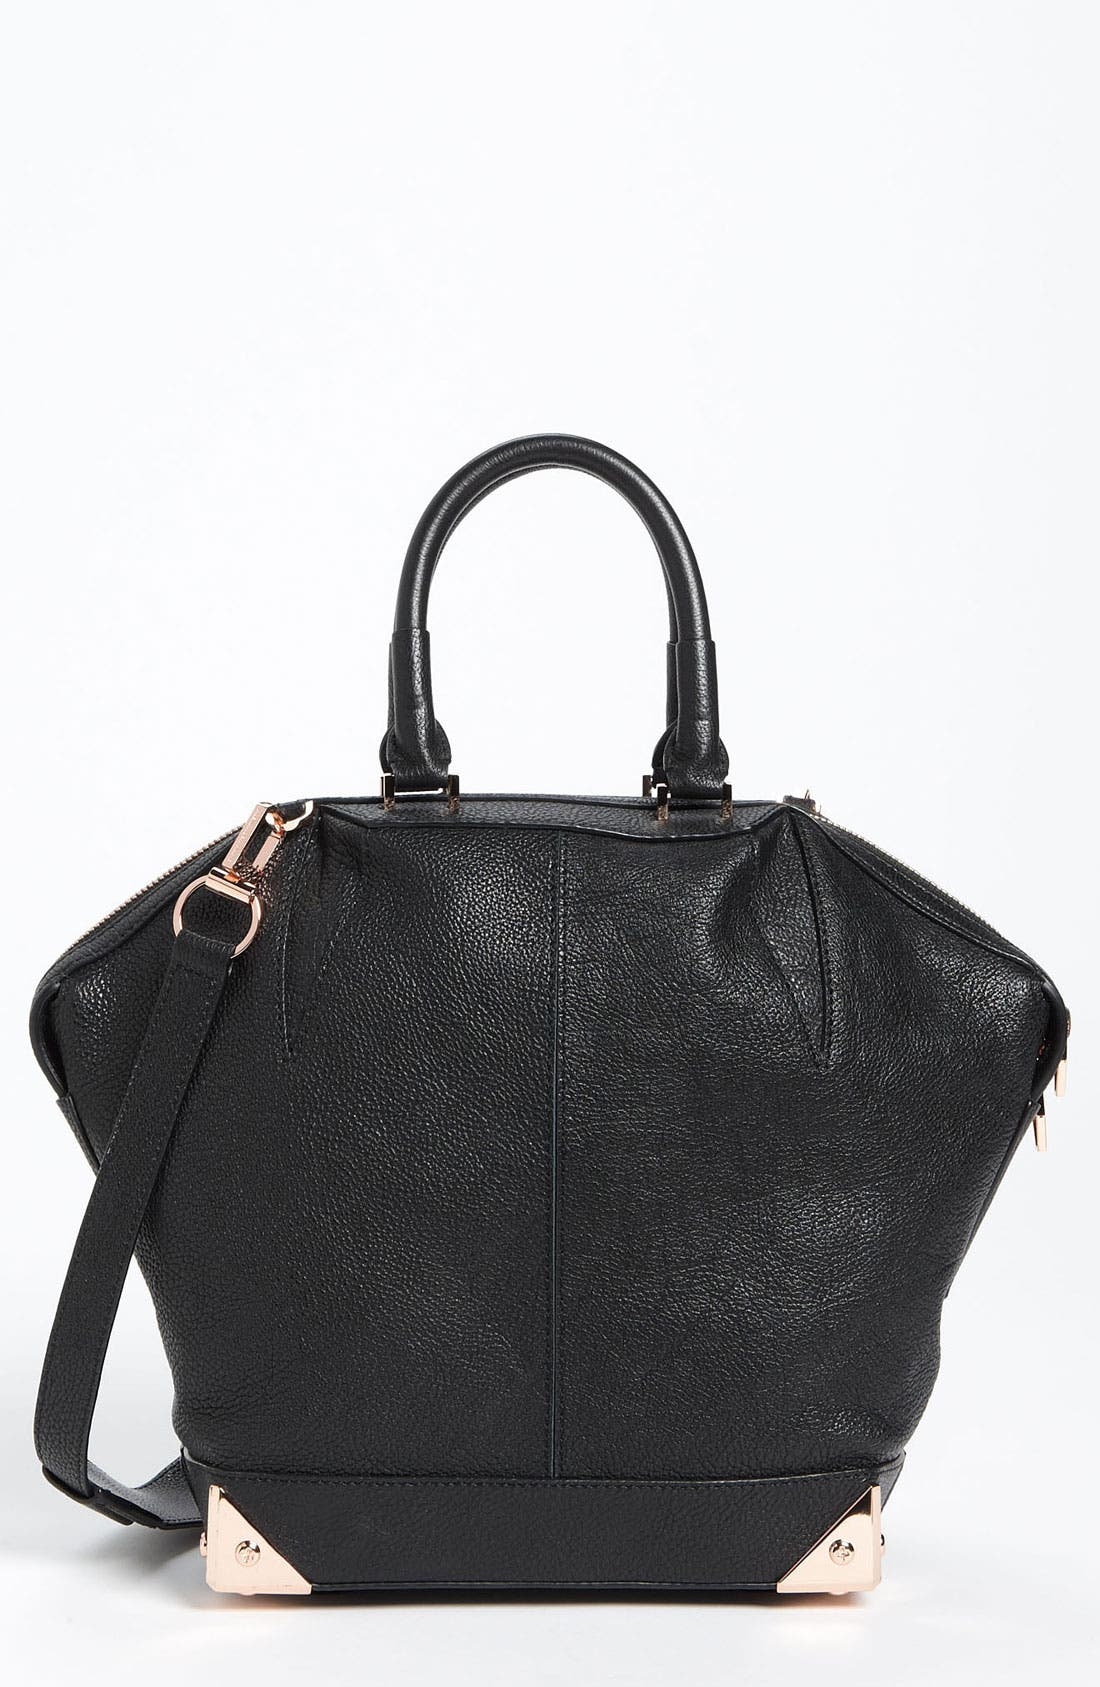 Main Image - Alexander Wang 'Emile - Small' Leather Tote